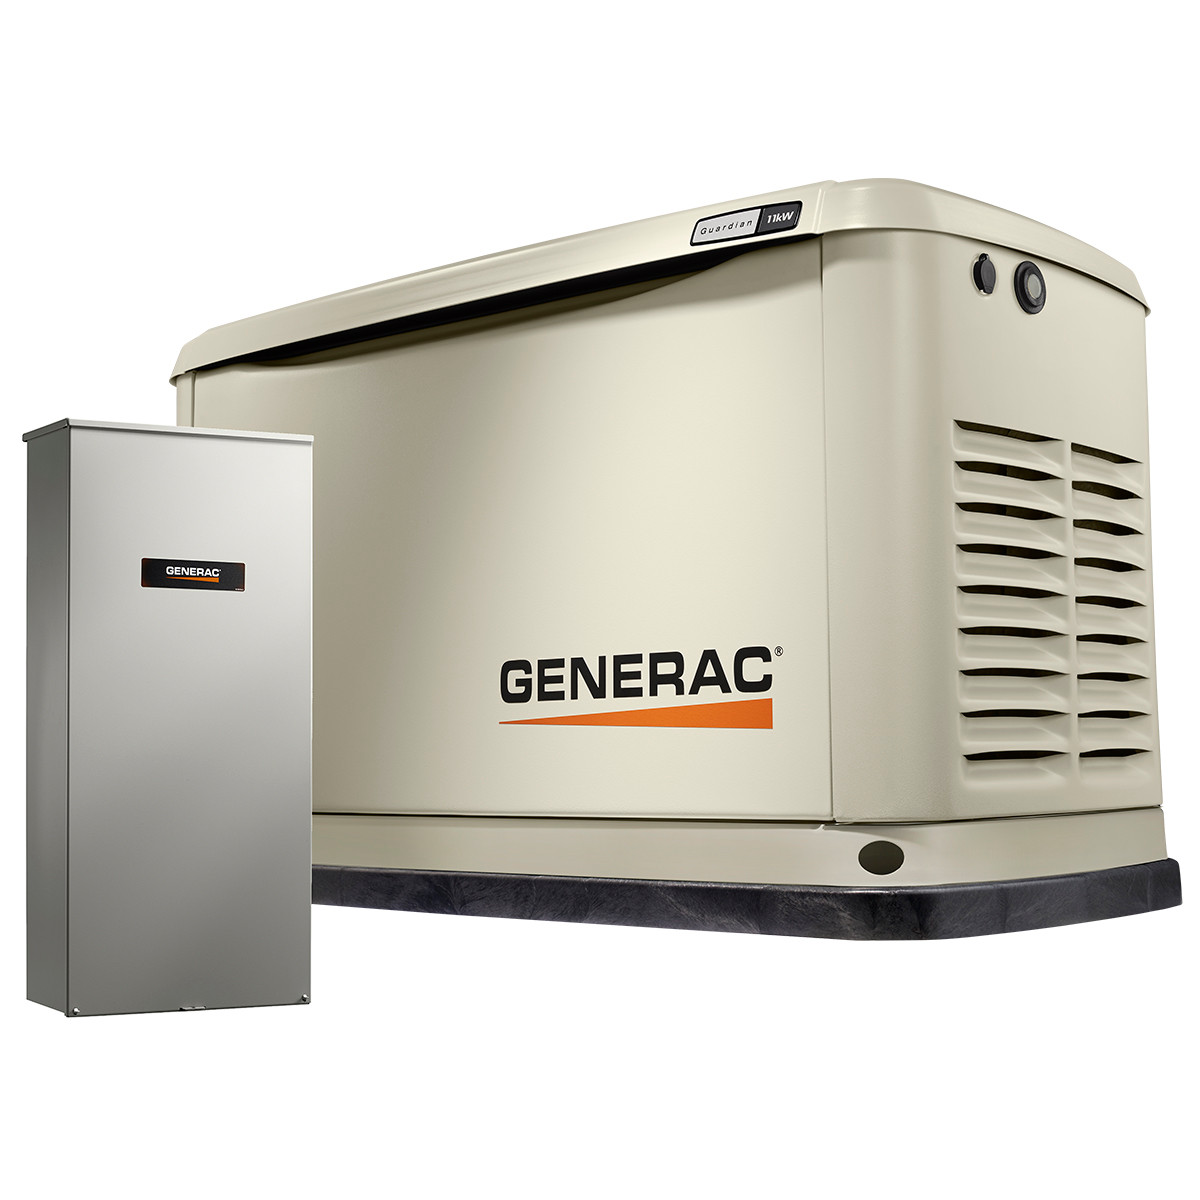 medium resolution of generac guardian 7032 11kw generator with wi fi 100a 16 circuit transfer switch